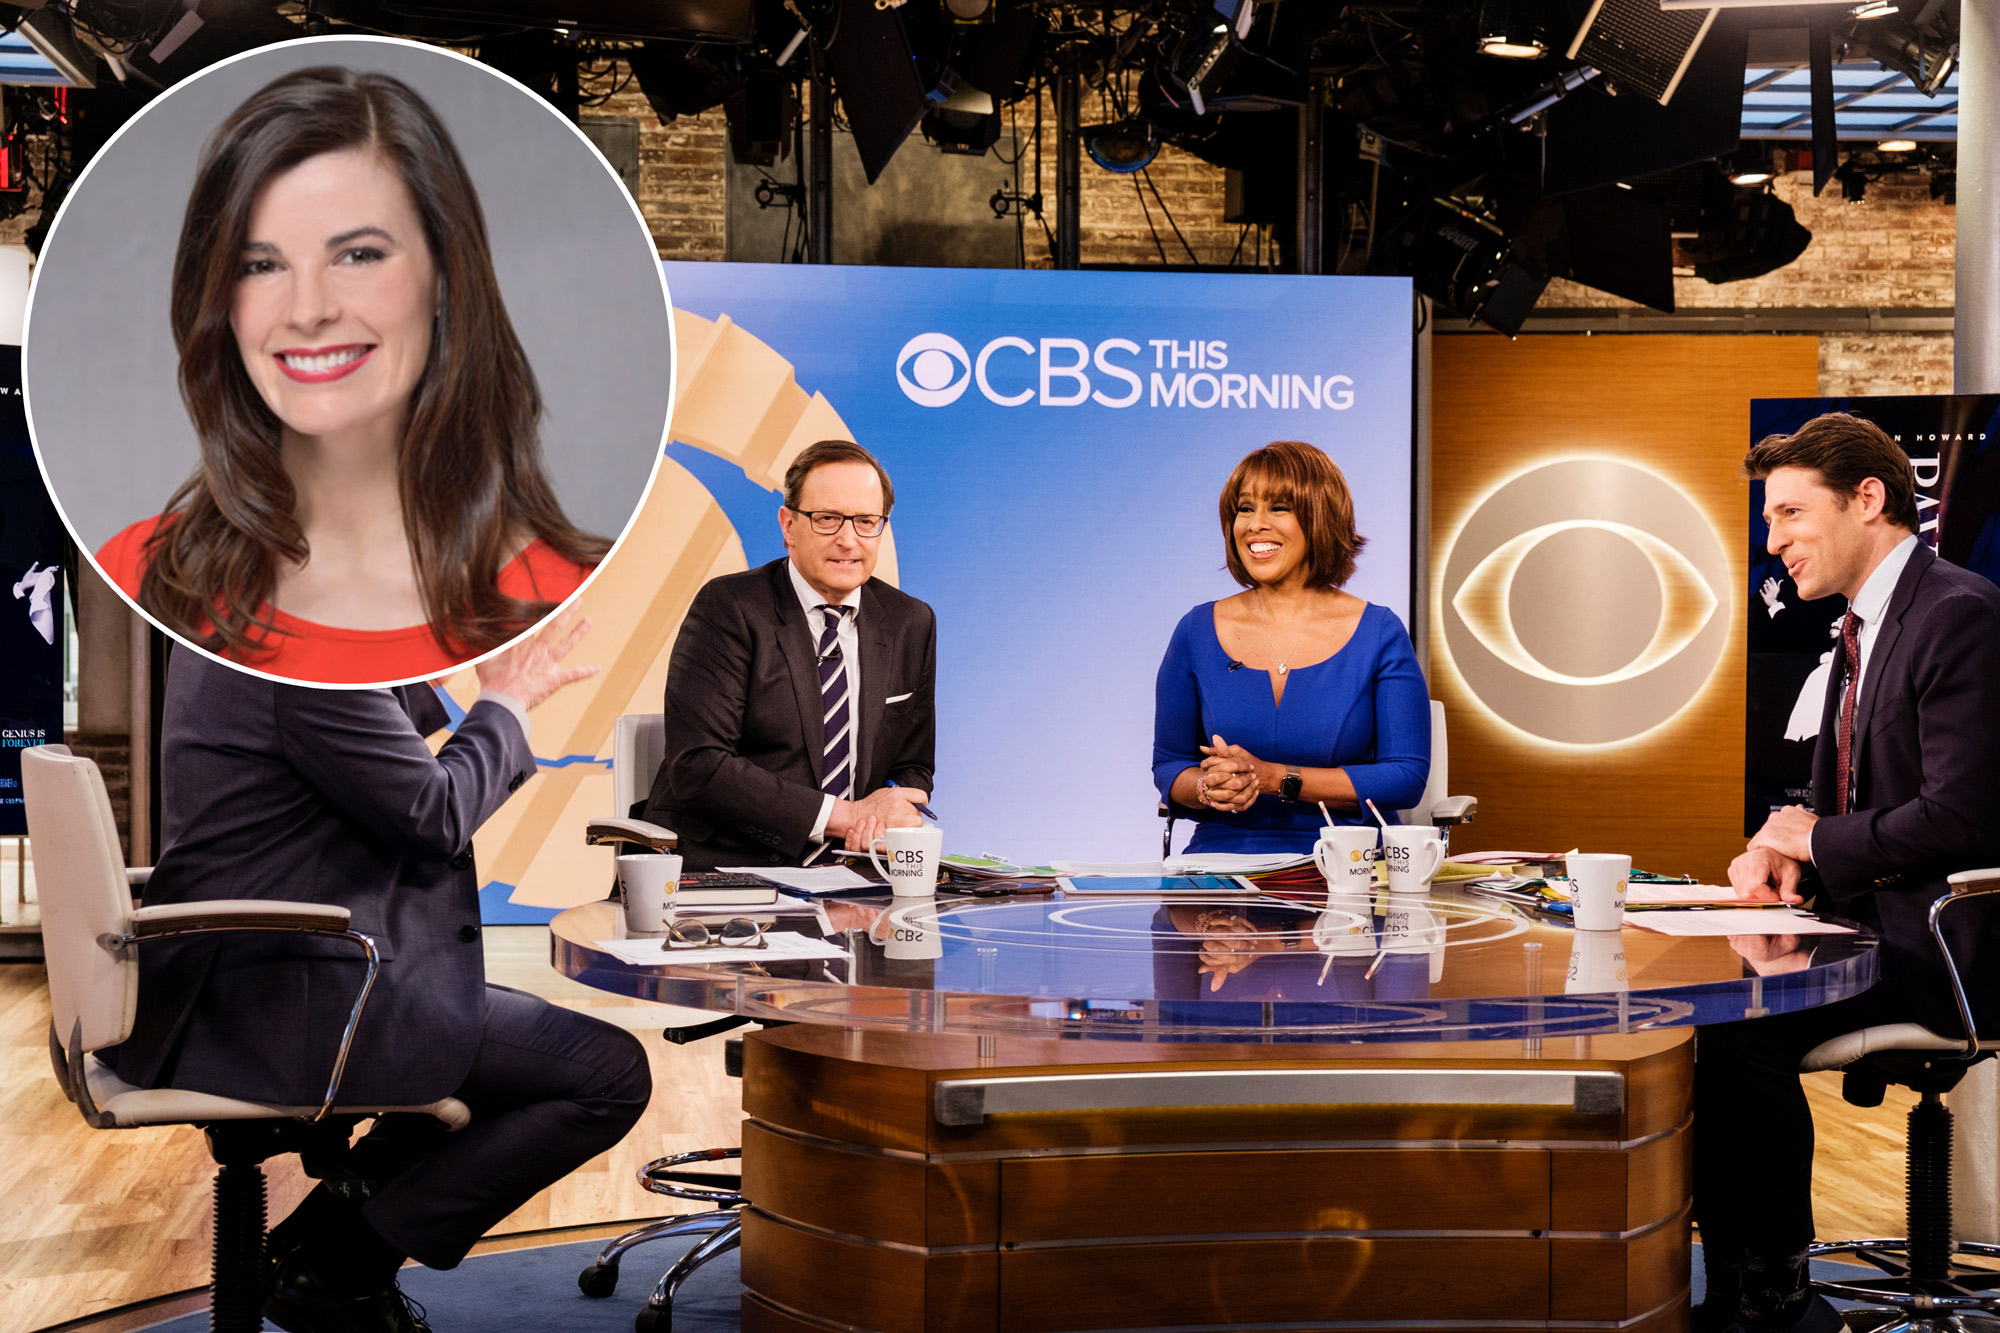 Cbs This Morning Executive Producer Diana Miller Steps Down